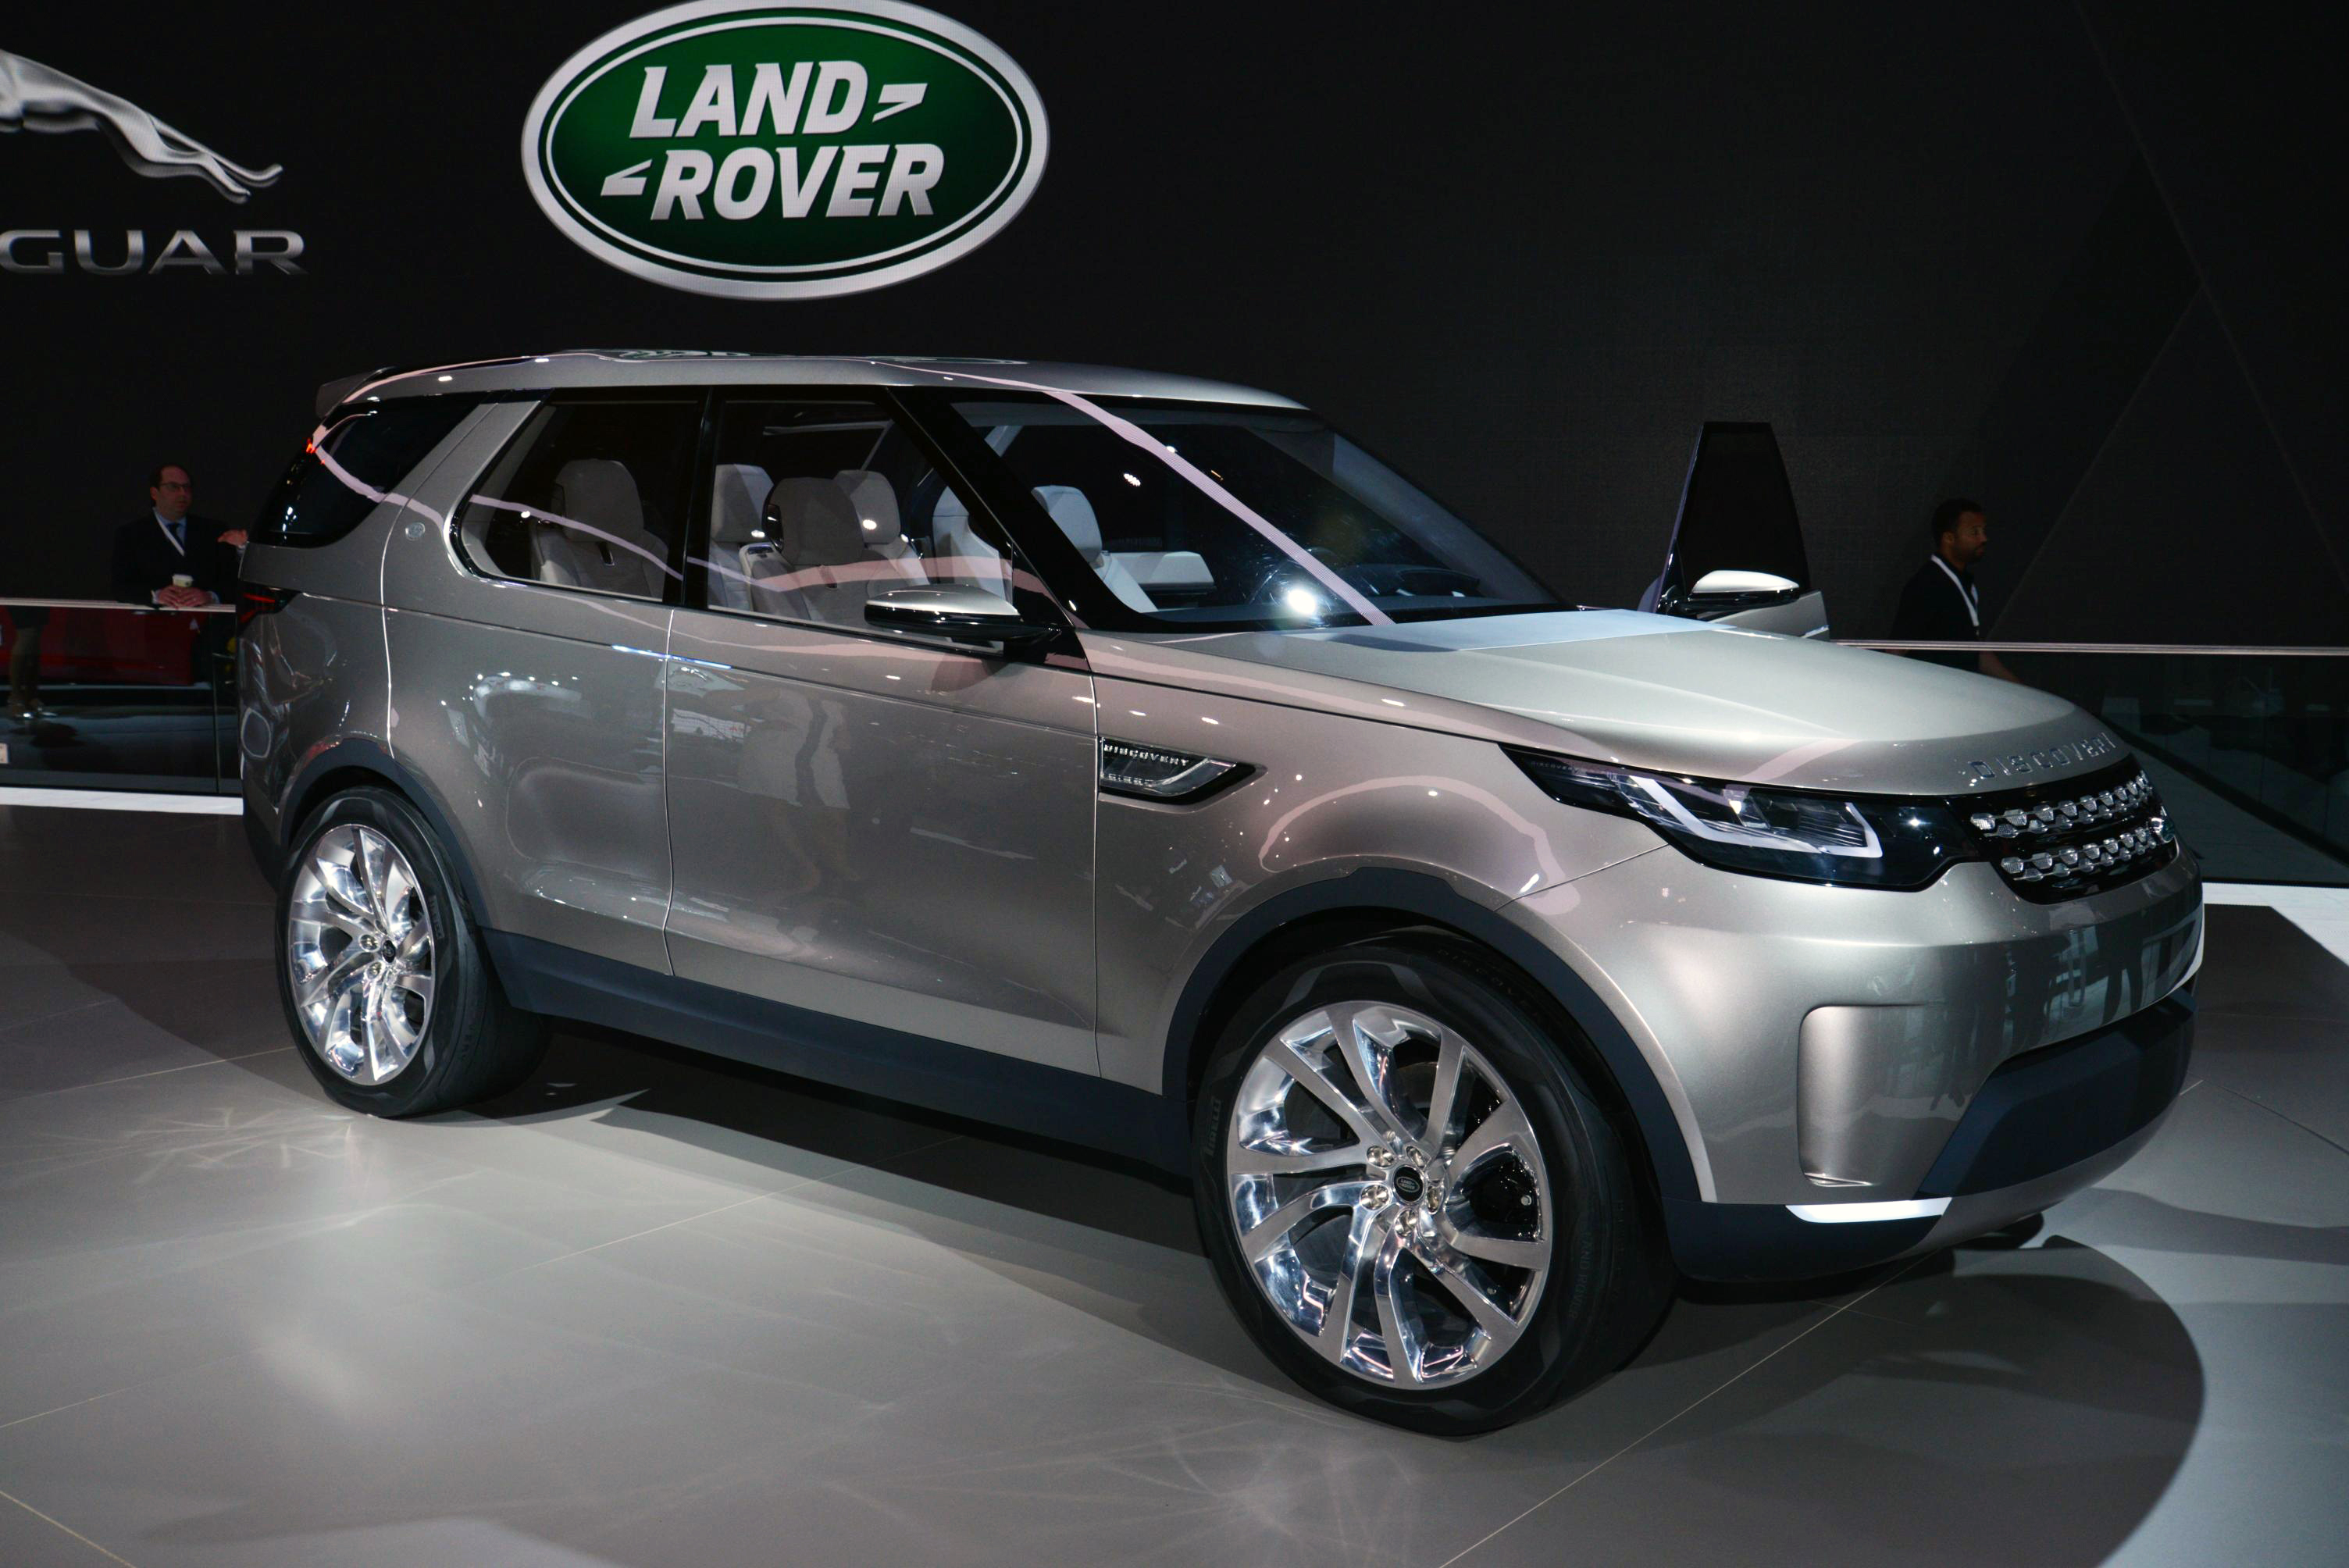 2015 Land Rover Discovery Sport Information and photos ZombieDrive